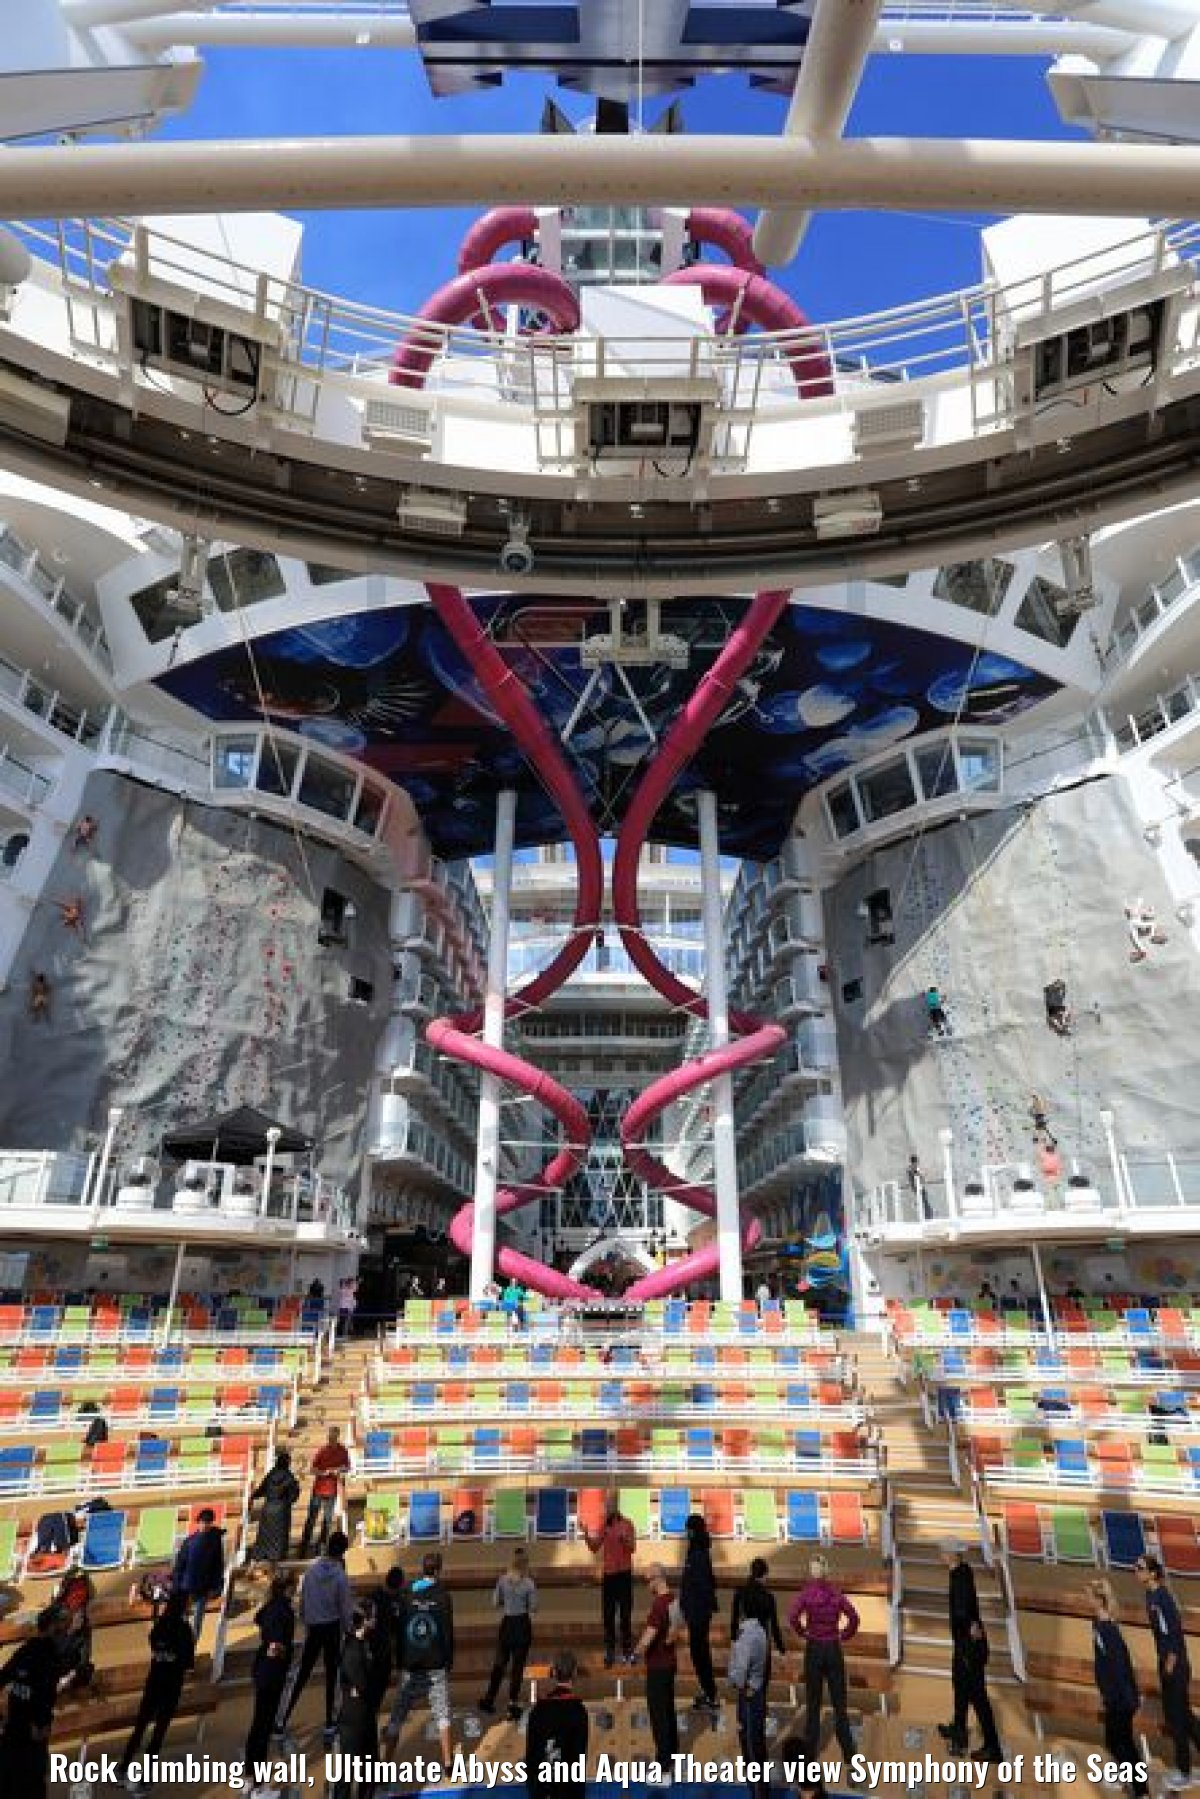 Rock climbing wall, Ultimate Abyss and Aqua Theater view Symphony of the Seas